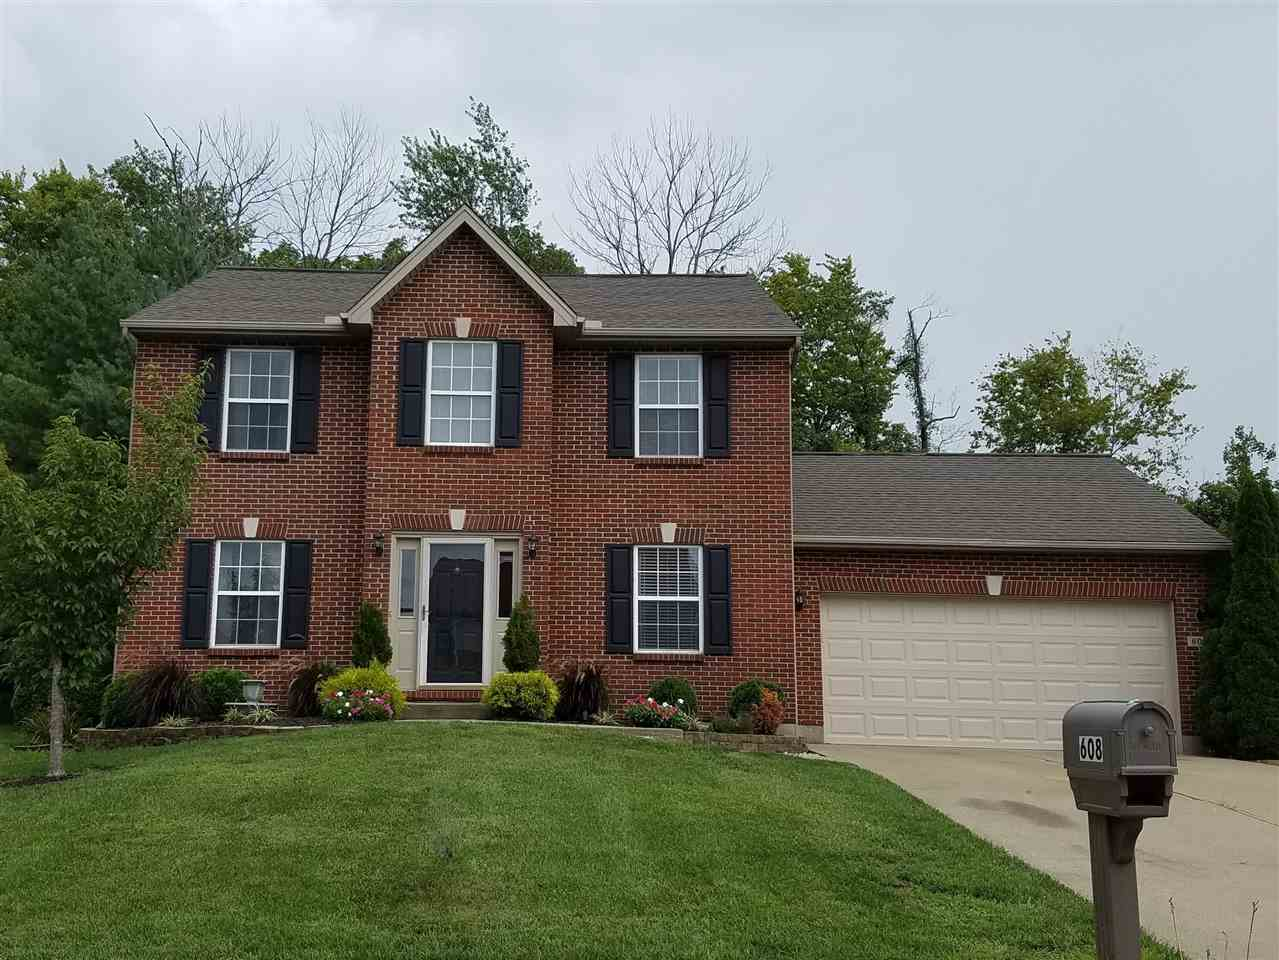 Photo 1 for 608 Buckshire Glen Florence, KY 41042